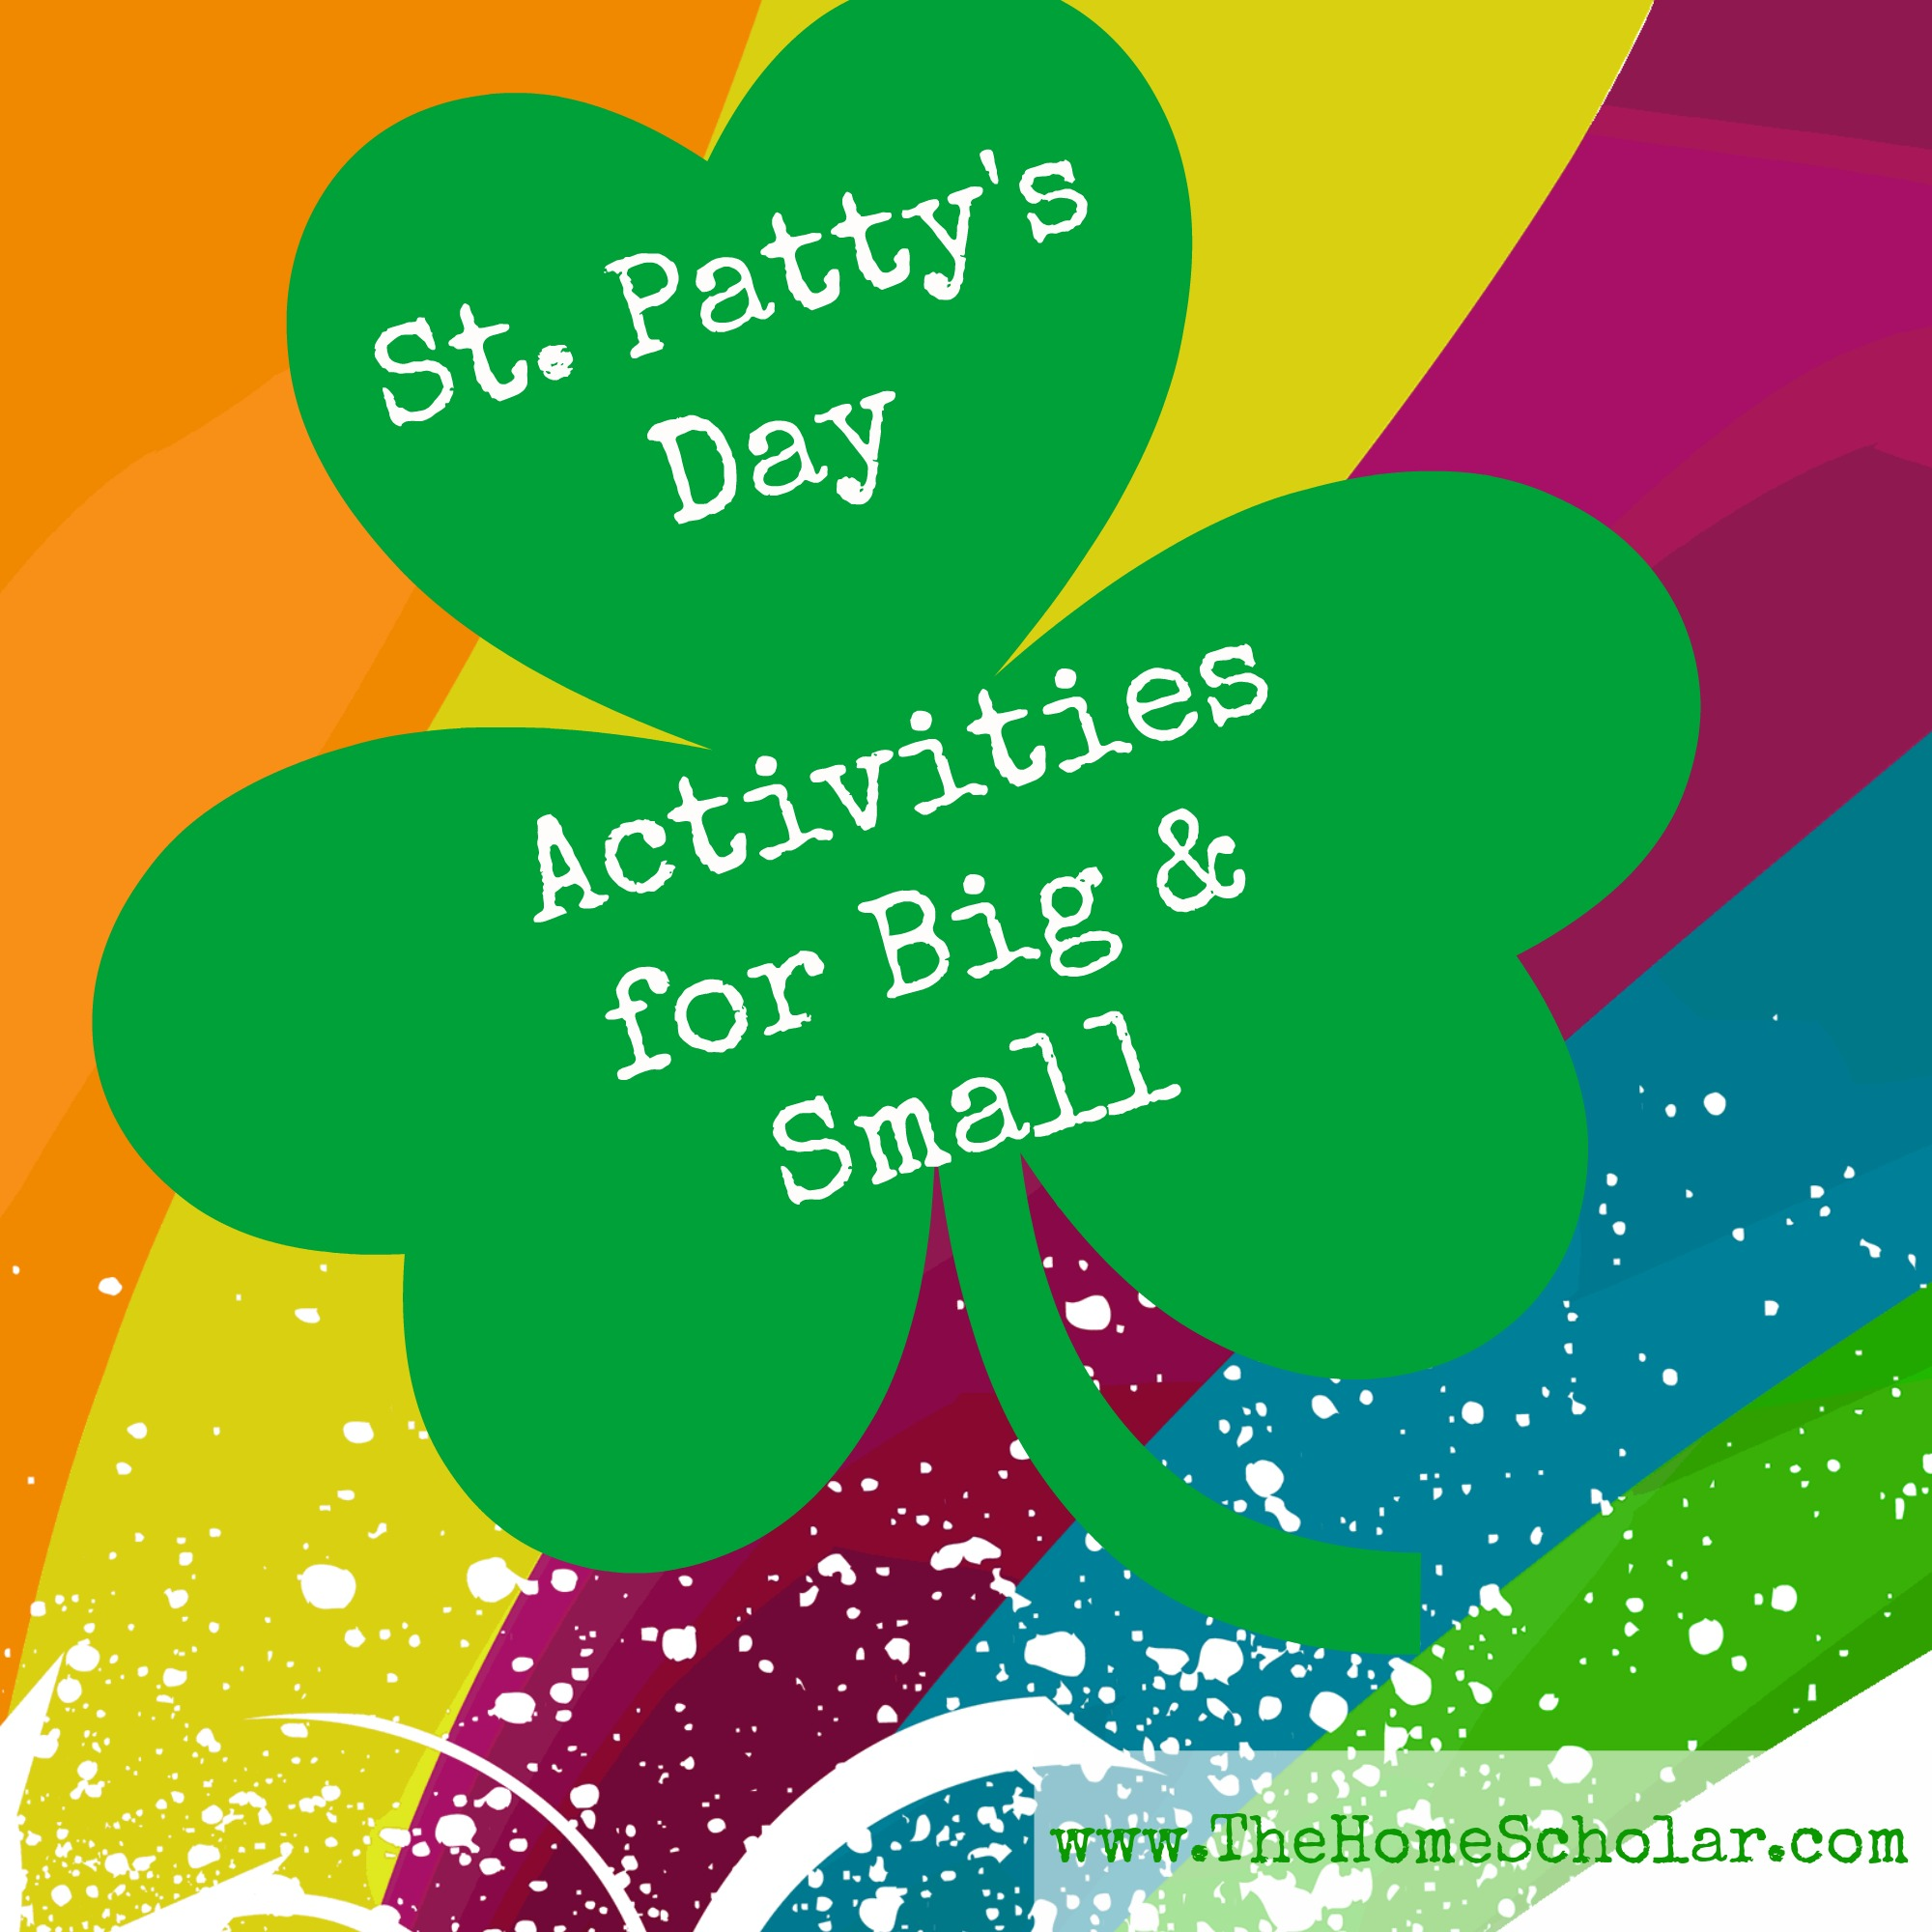 St Patty's Day Activities for Big and Small